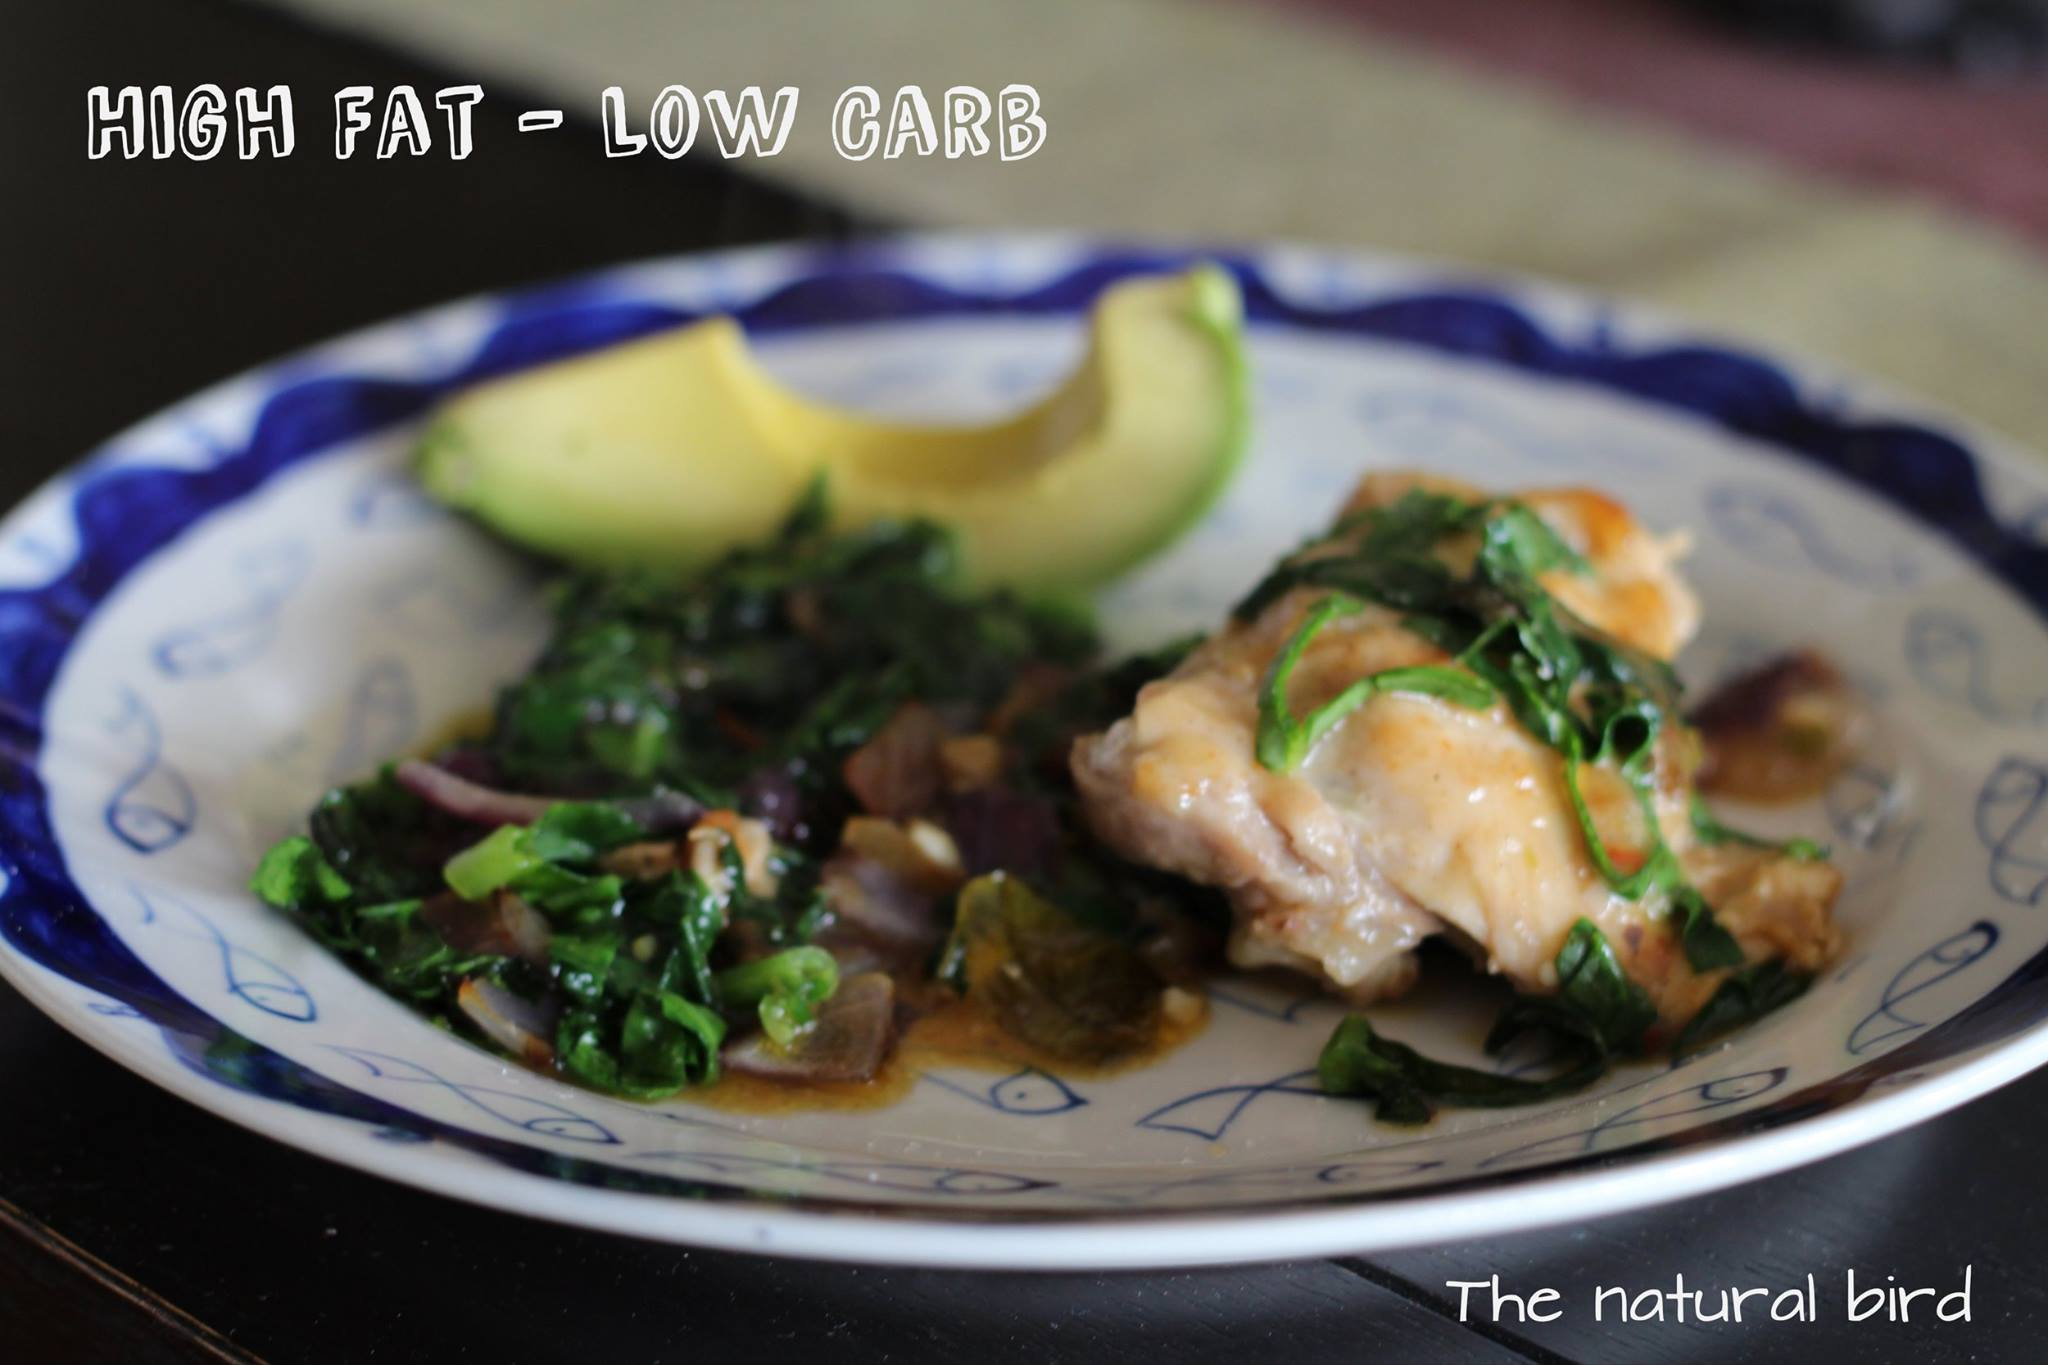 Low carb high fat for this natural bird!